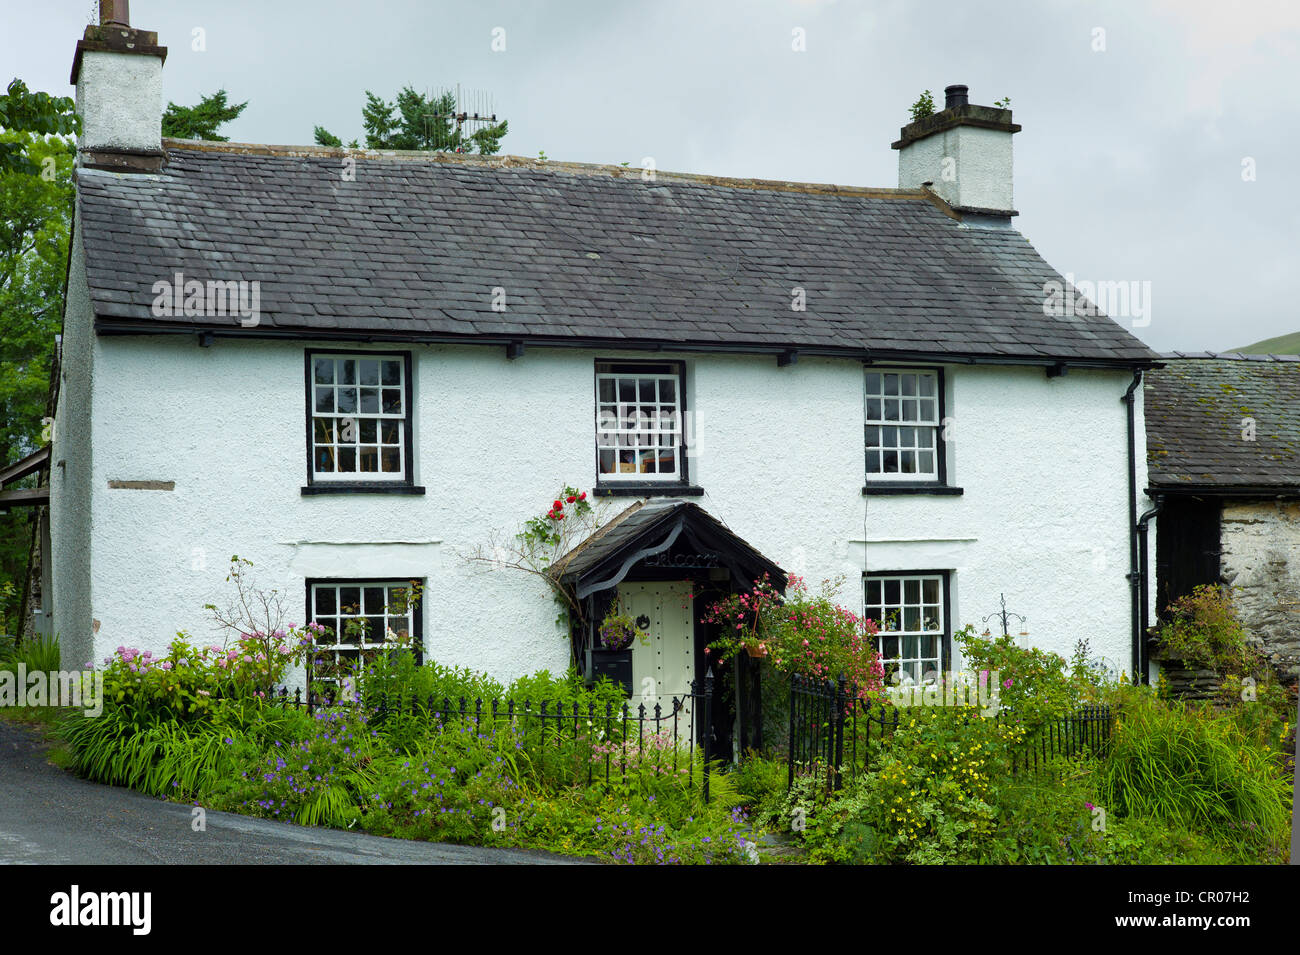 Quaint lakeland cottage and country lane at Troutbeck in the Lake District National Park, Cumbria, UK - Stock Image